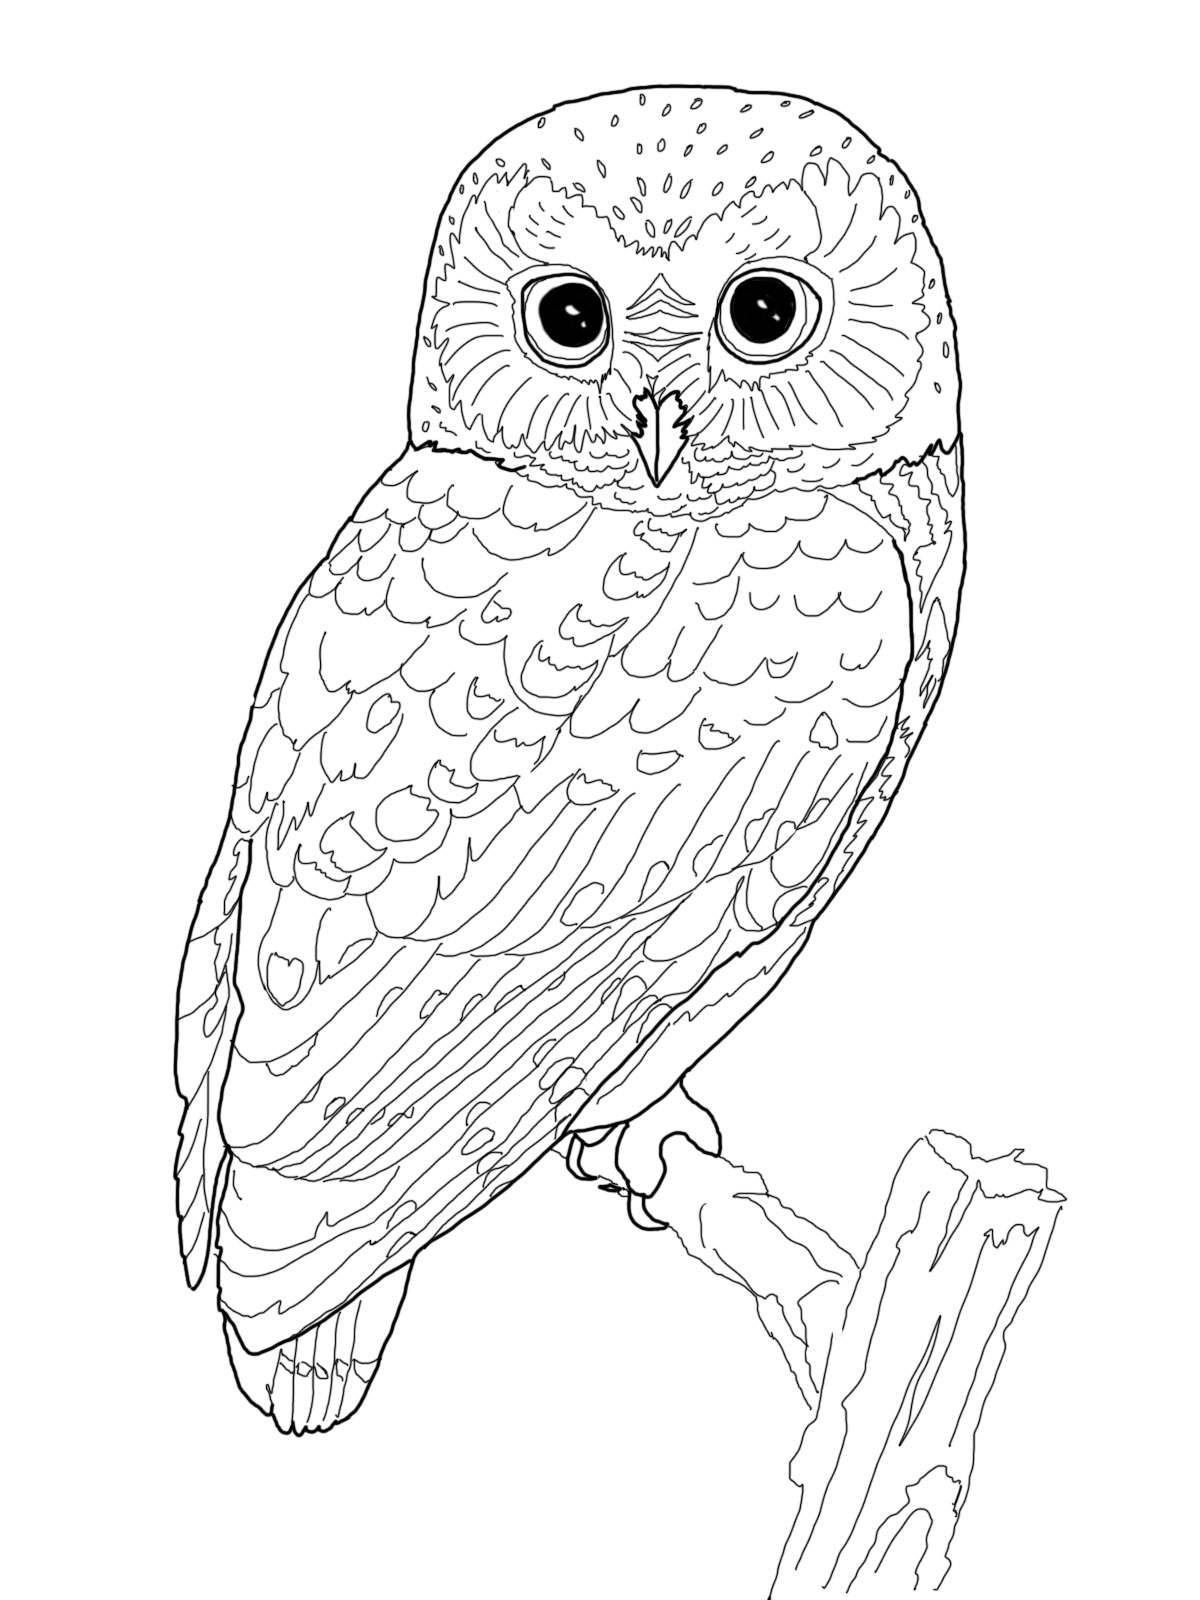 owl coloring pages for kids owl coloring pages for kids printable coloring pages 2 for coloring pages owl kids